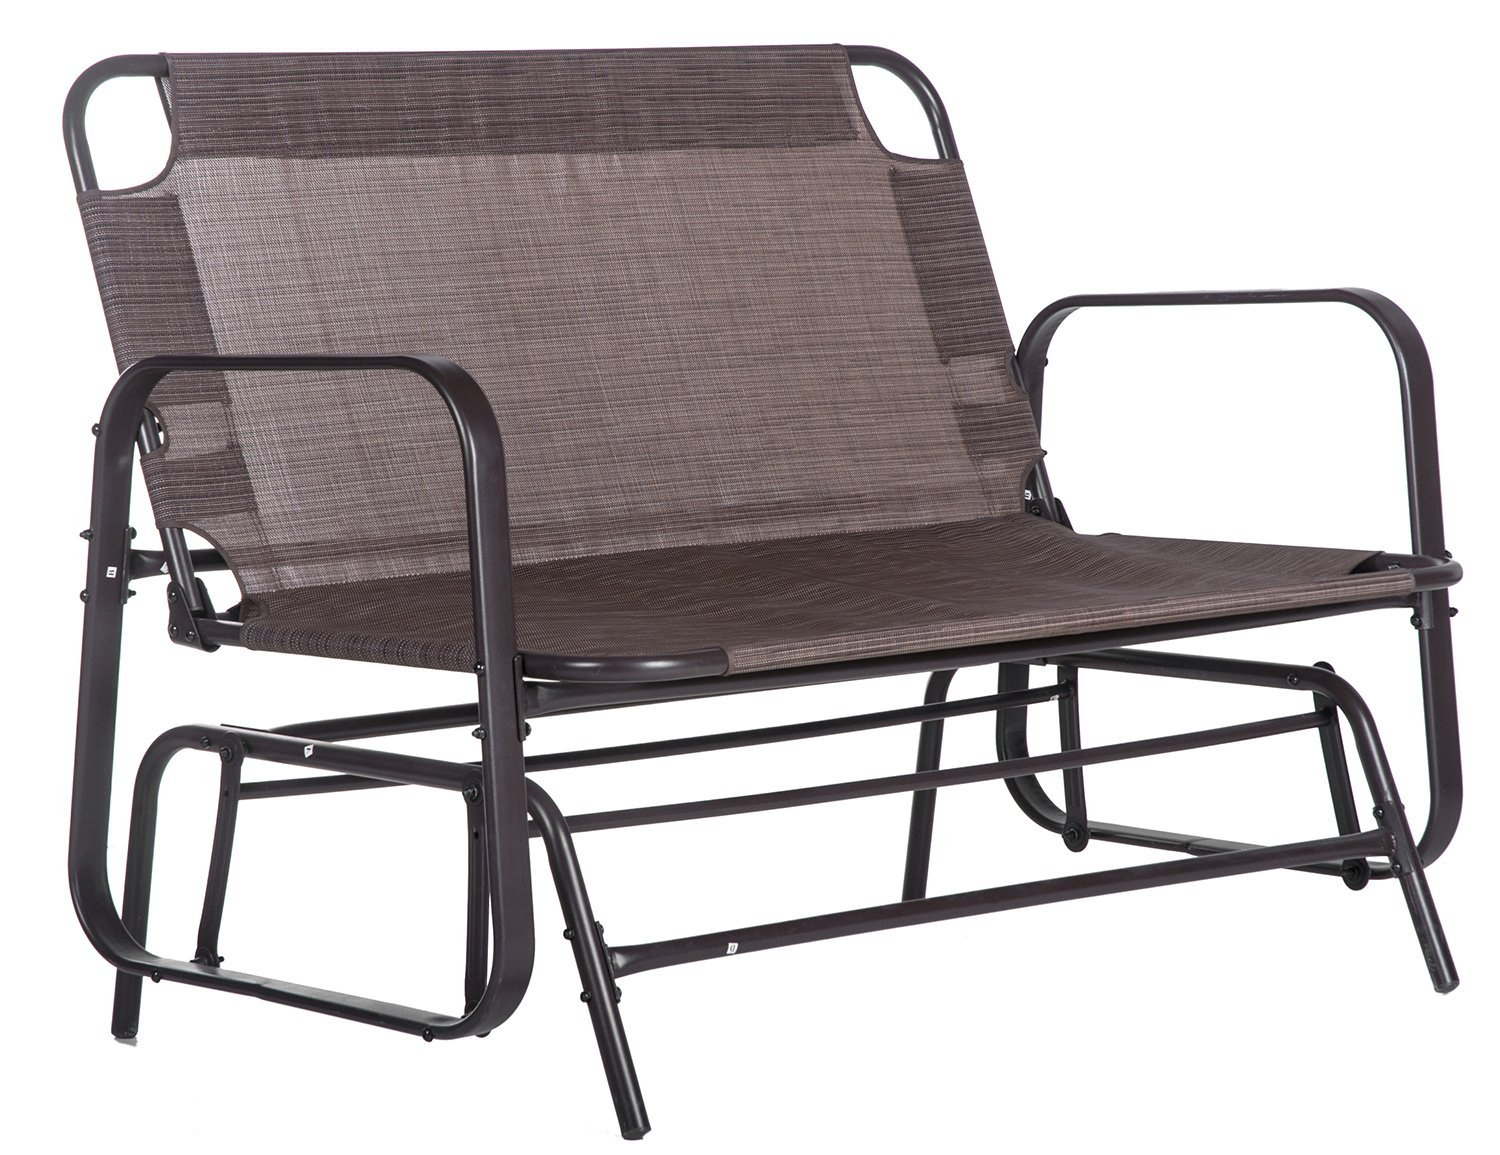 Buy Merax Patio Loveseat Glider Rocking Chair Garden Outdoor For Glider Benches With Cushion (View 10 of 25)